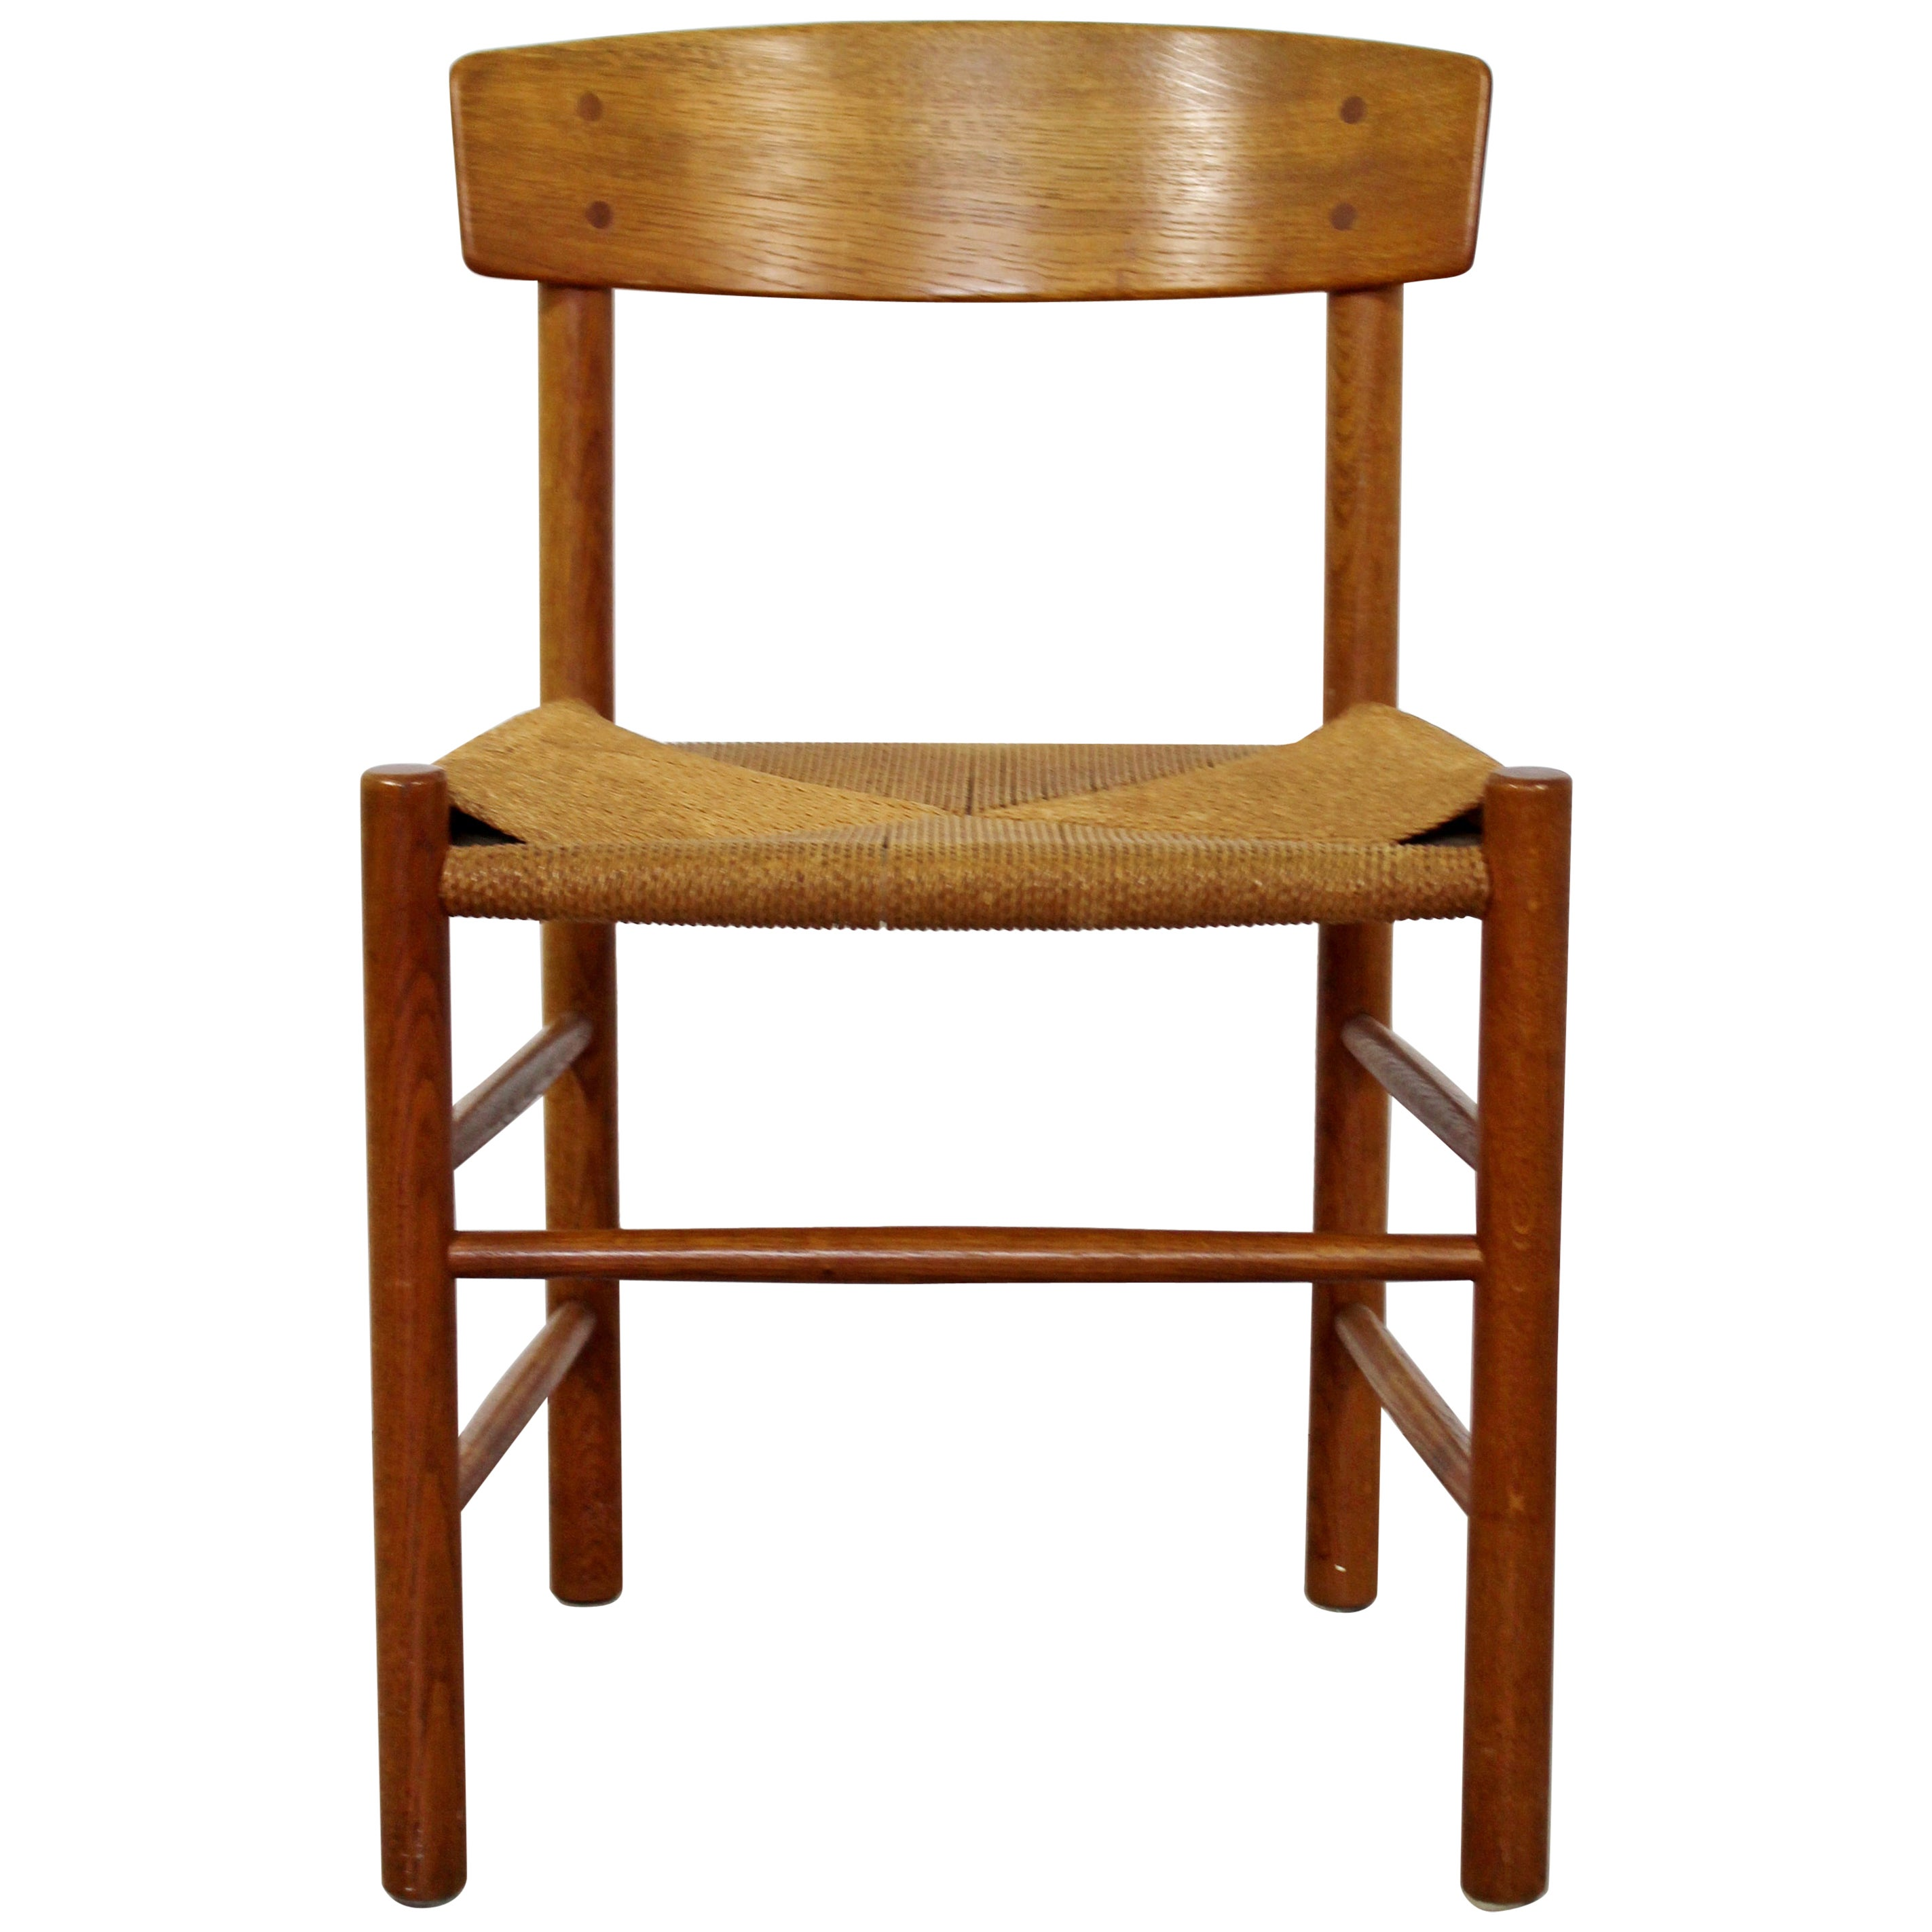 1950s Accent Chairs.Mid Century Modern Danish Wood And Cord Side Accent Chair 1950s